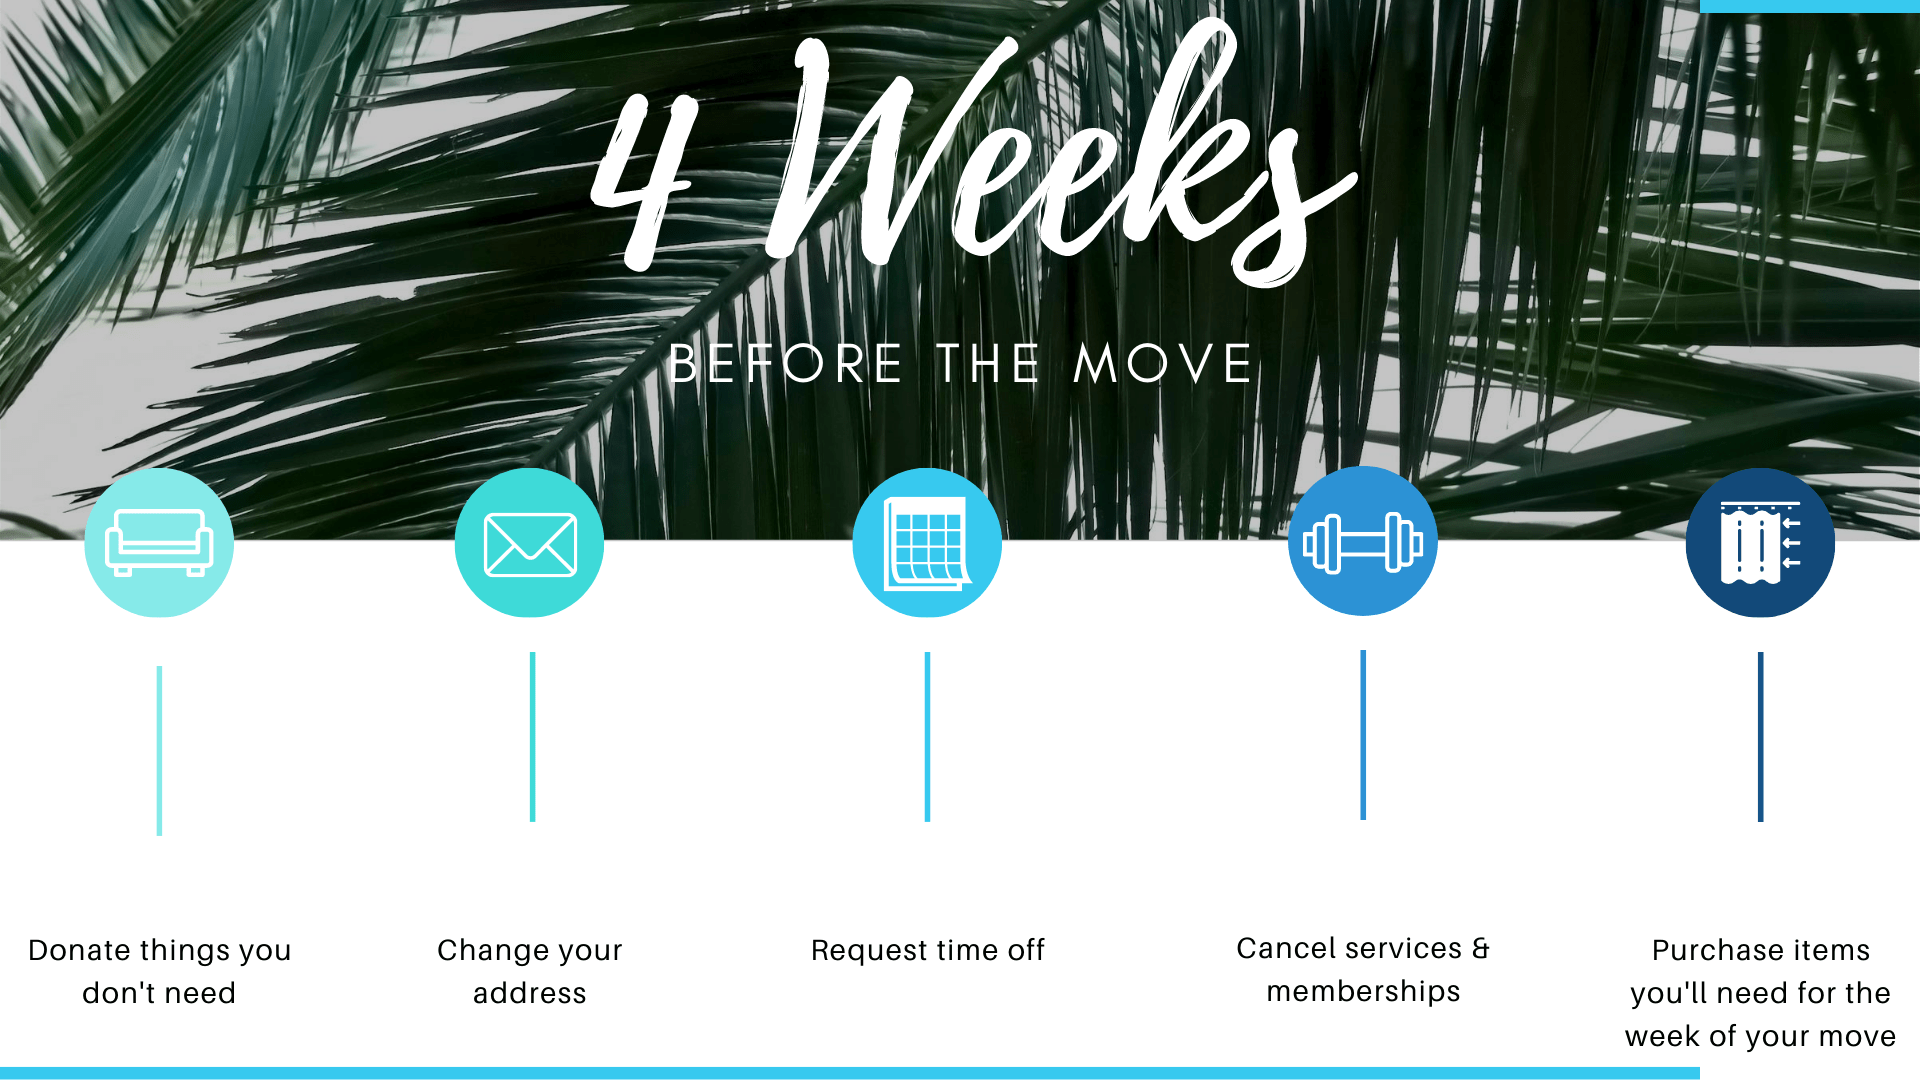 what to do 4 weeks before the move date